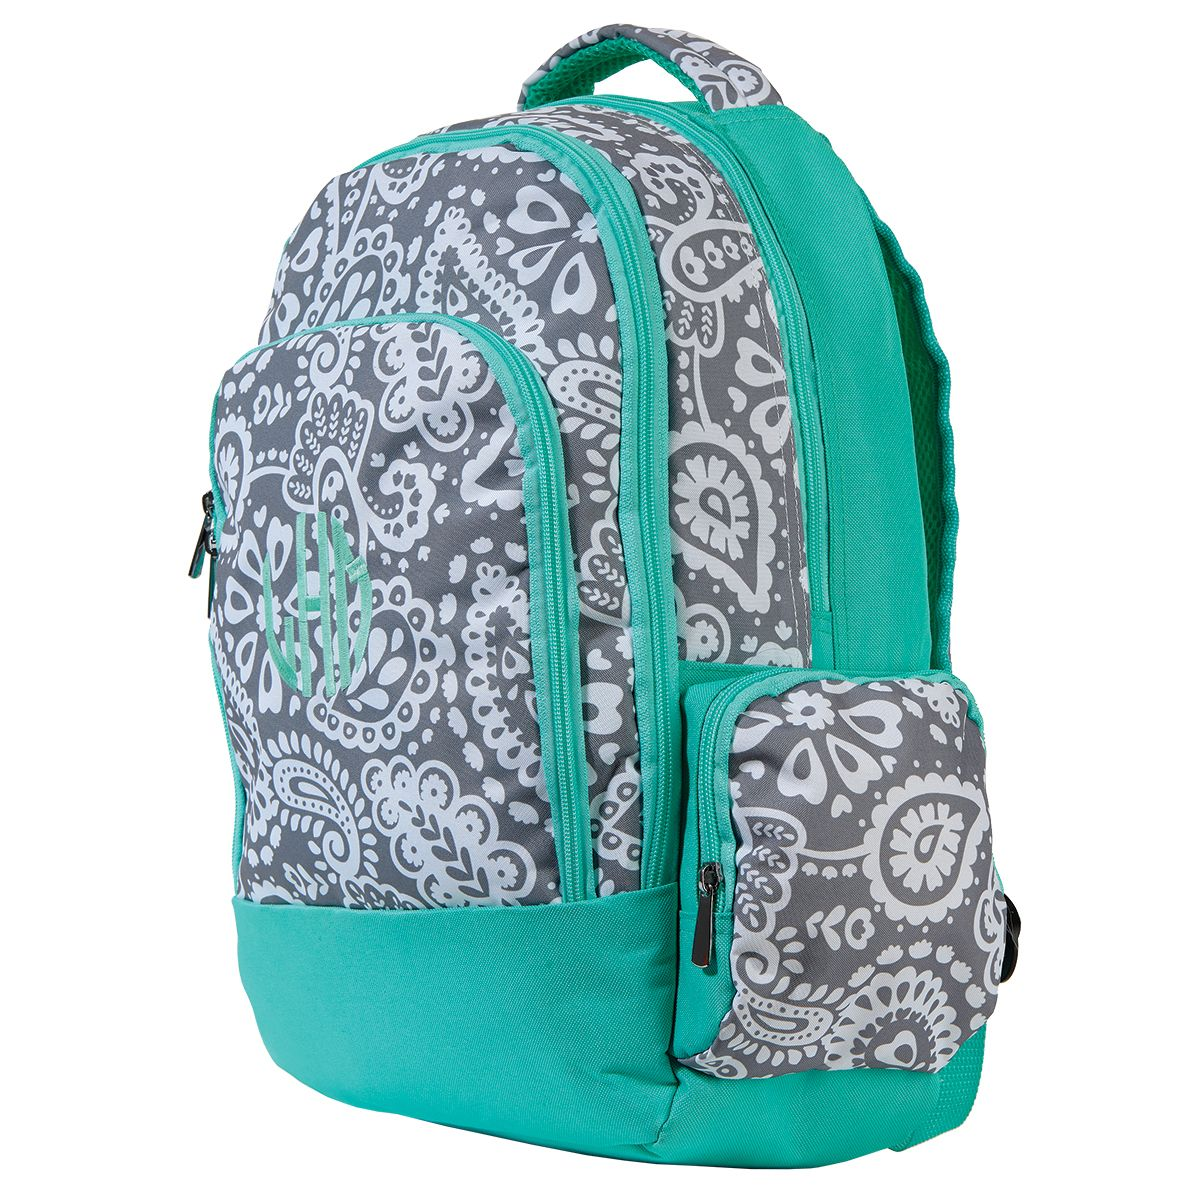 Parker Personalized Backpack